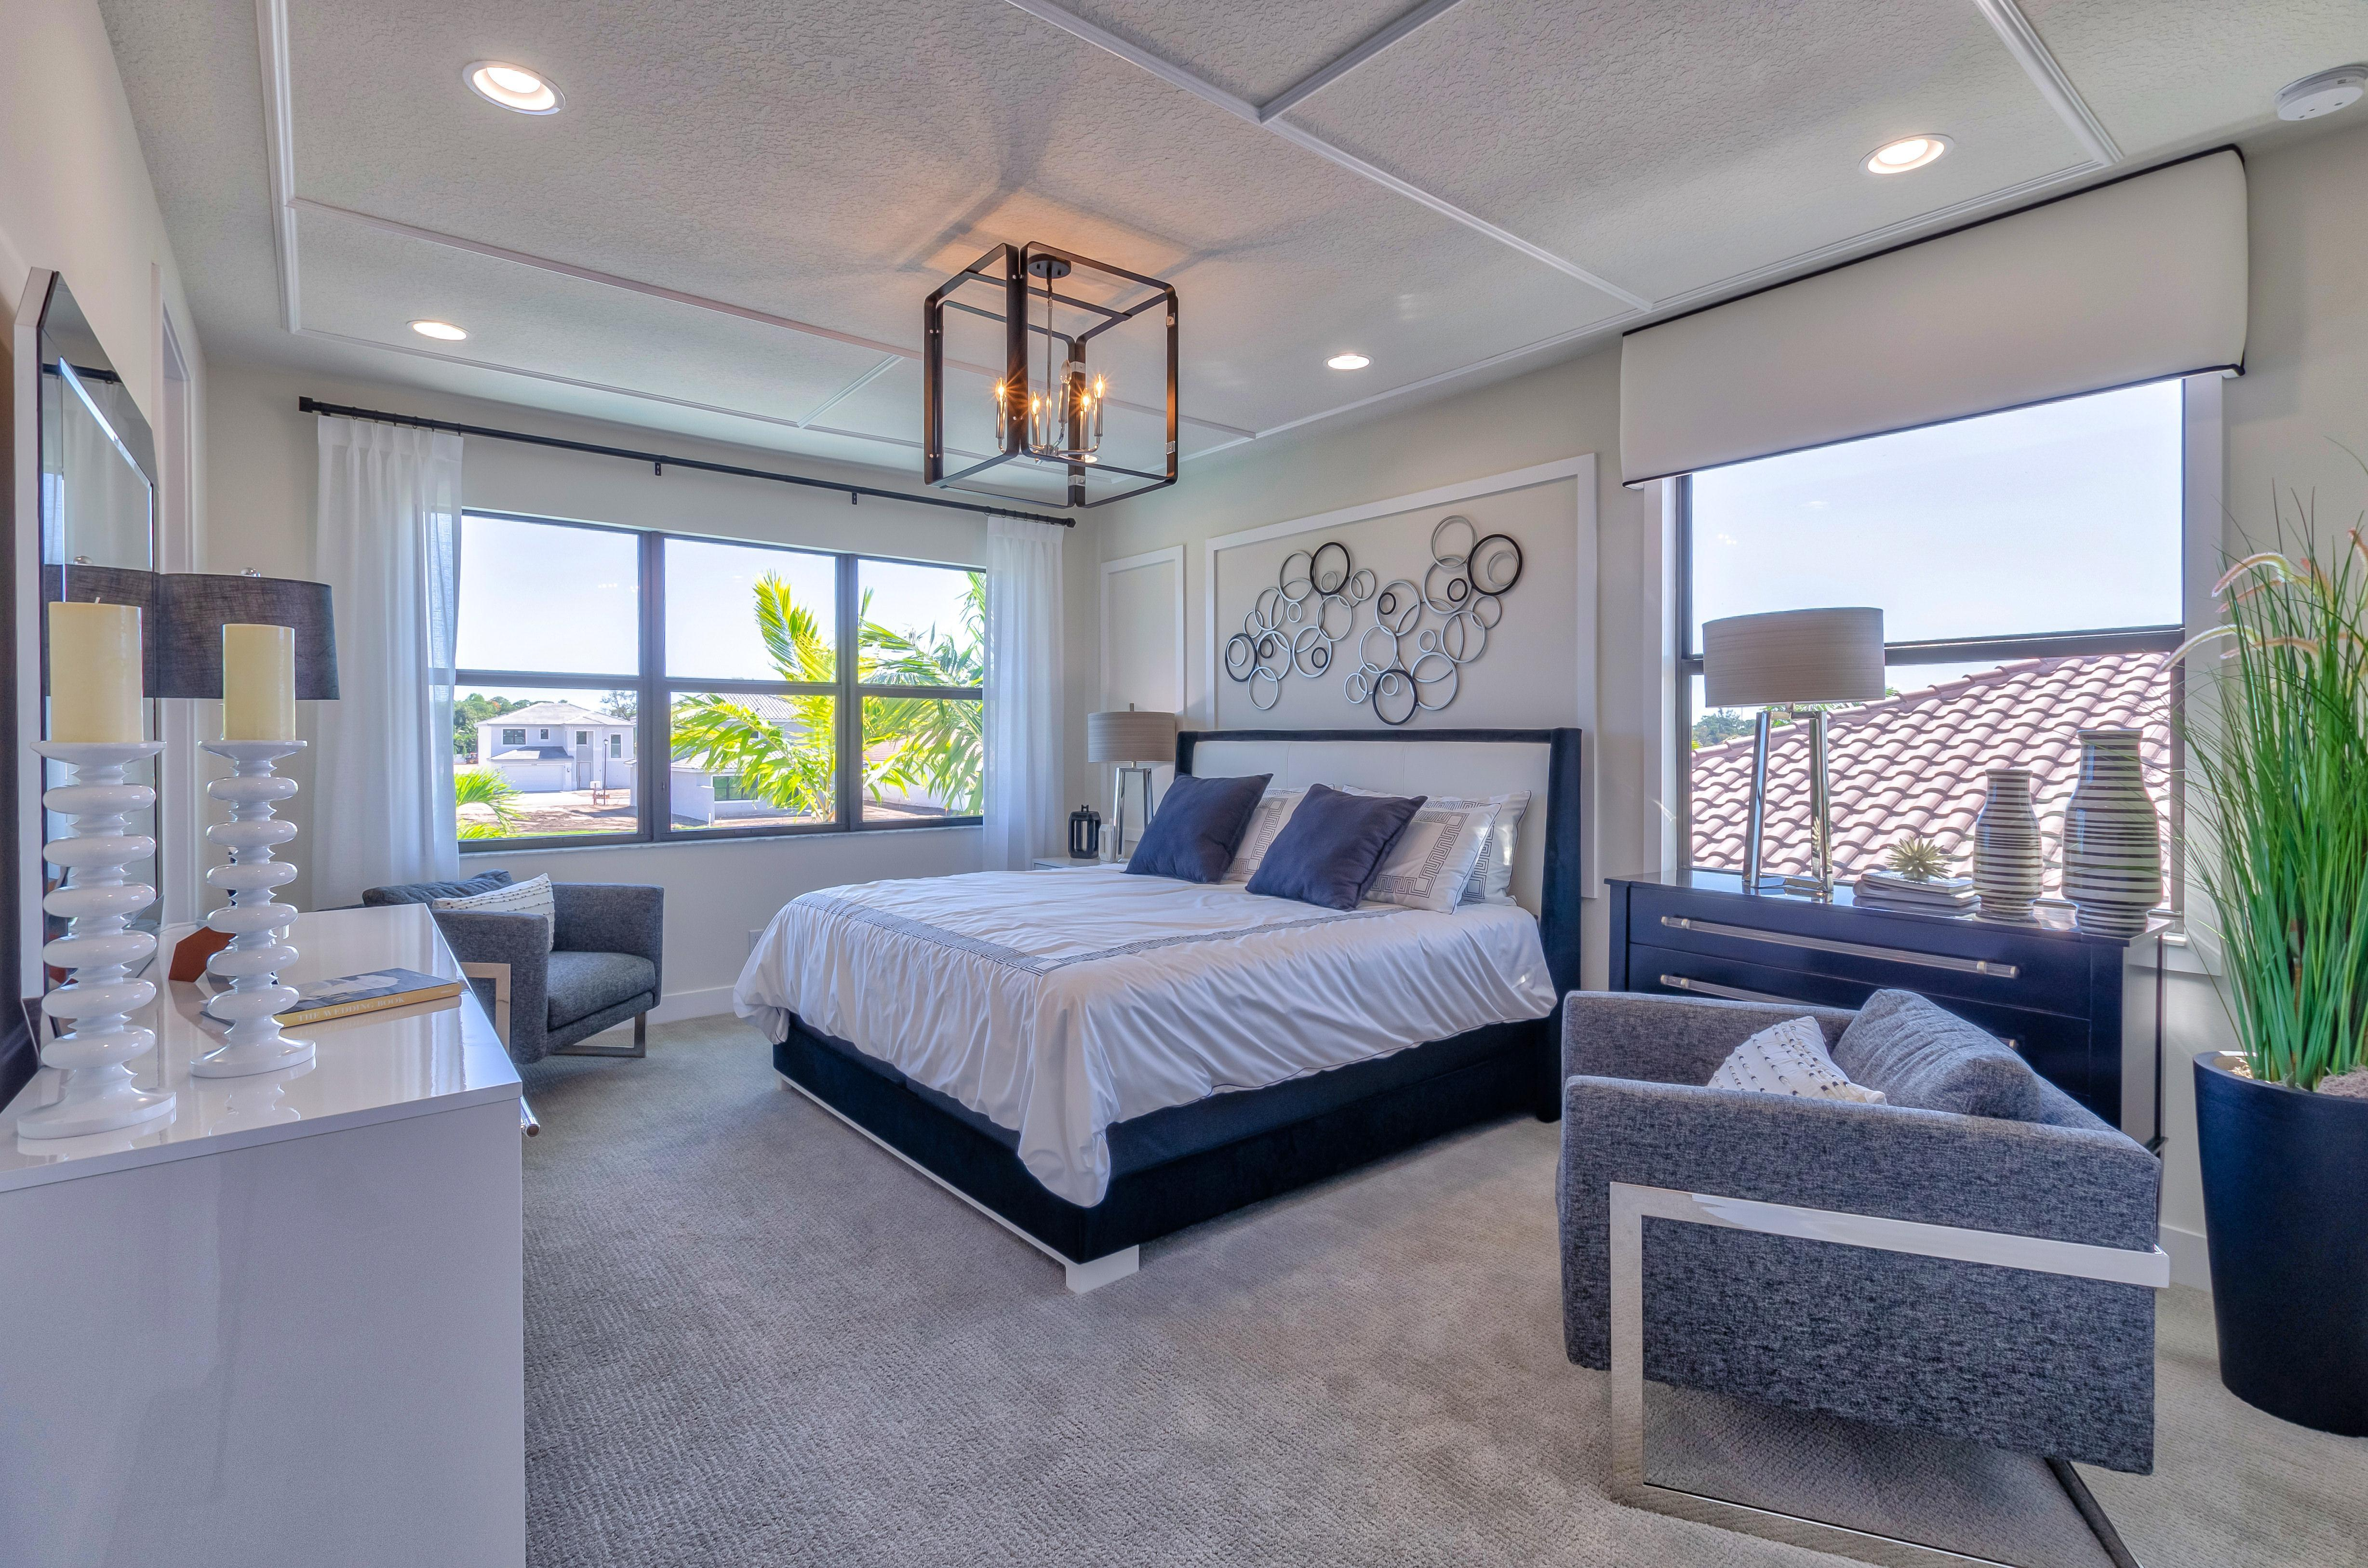 Bedroom featured in the Costa By Akel Homes in Palm Beach County, FL